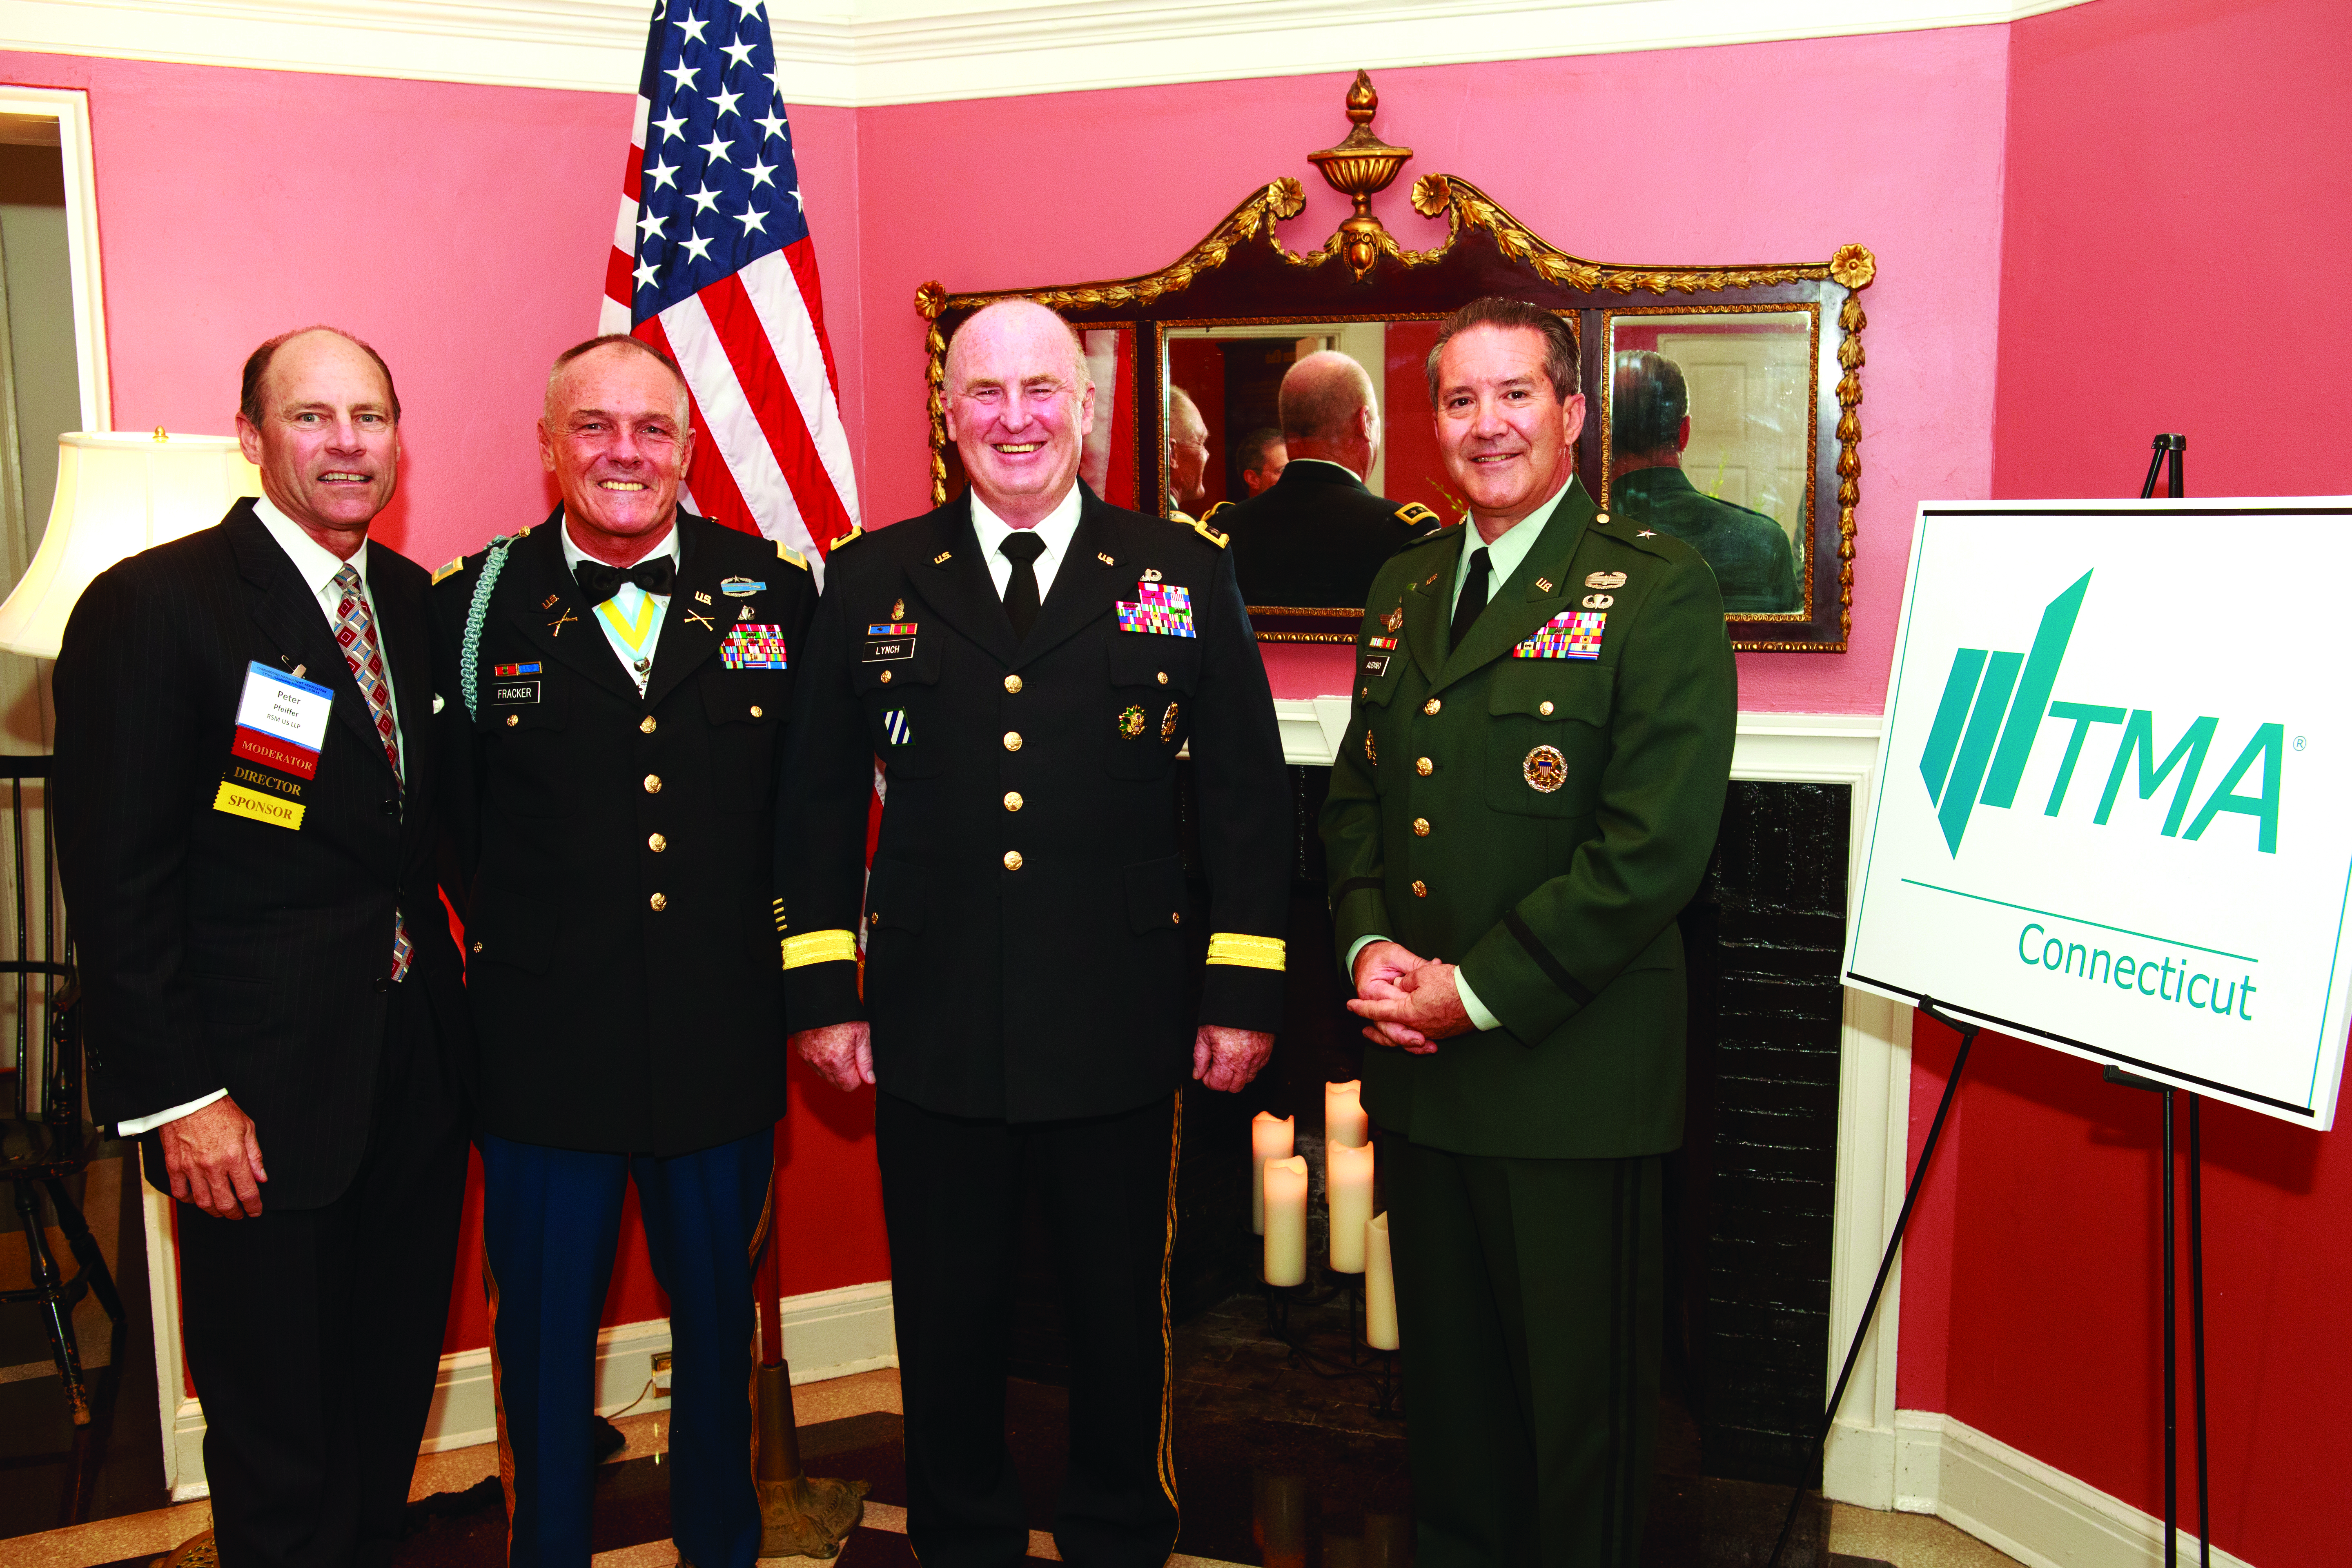 Left to right, Peter A.S. Pfeiffer with retired U.S. Army officers  Col. Al Fracker, Lt. Gen. Rick Lynch, and Brig. Gen. Ernest C. Audino